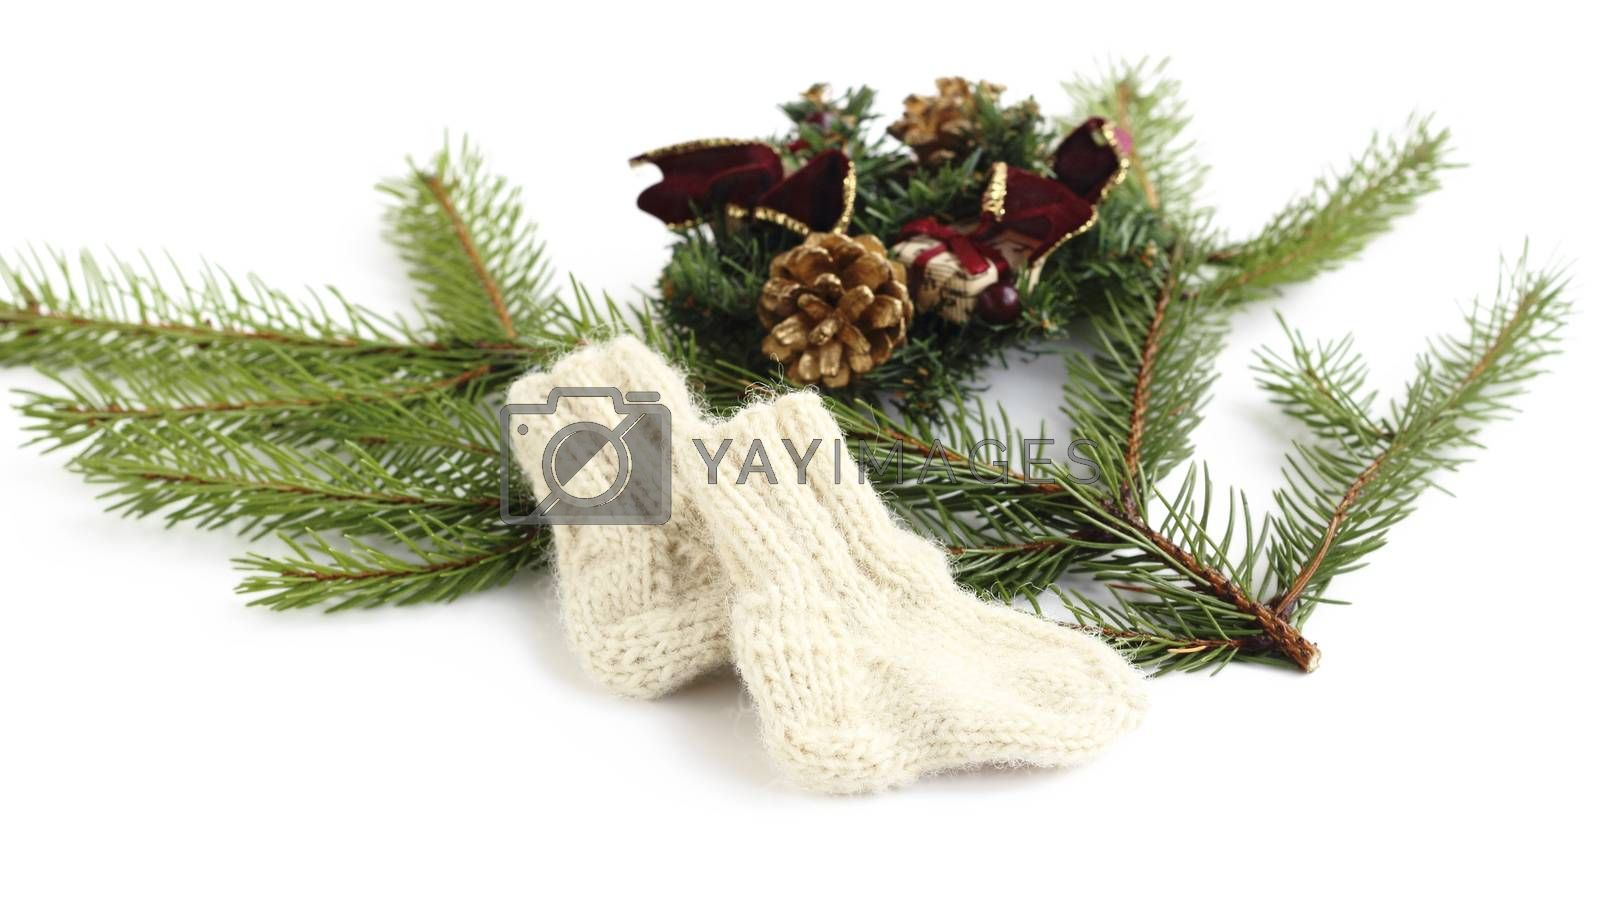 baby knitted woolen socks near spruce branches